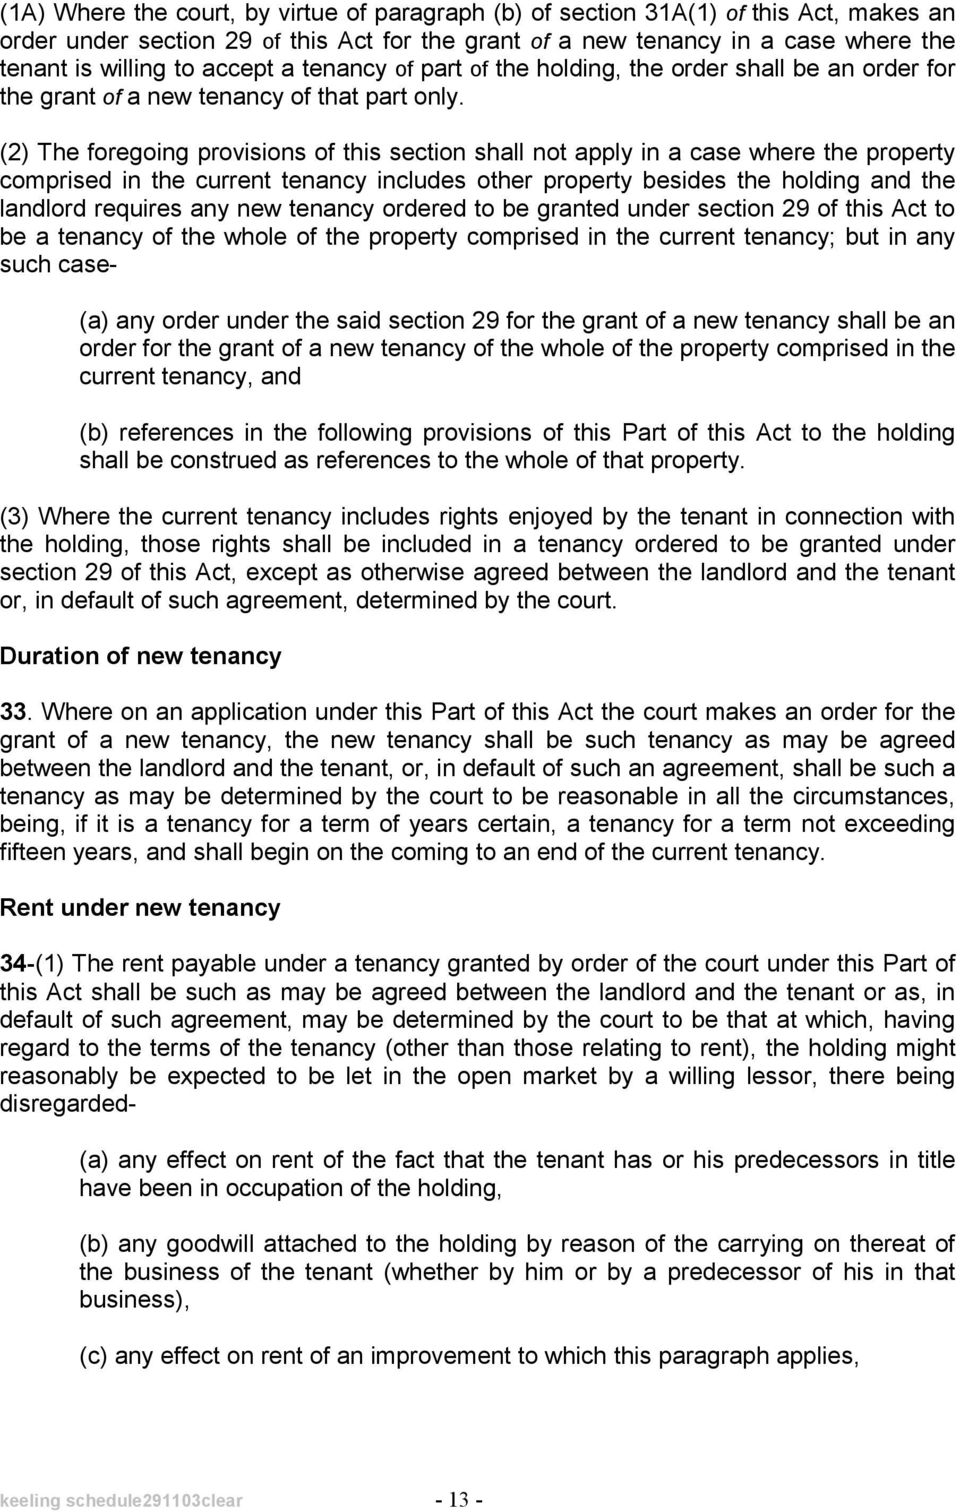 (2) The foregoing provisions of this section shall not apply in a case where the property comprised in the current tenancy includes other property besides the holding and the landlord requires any